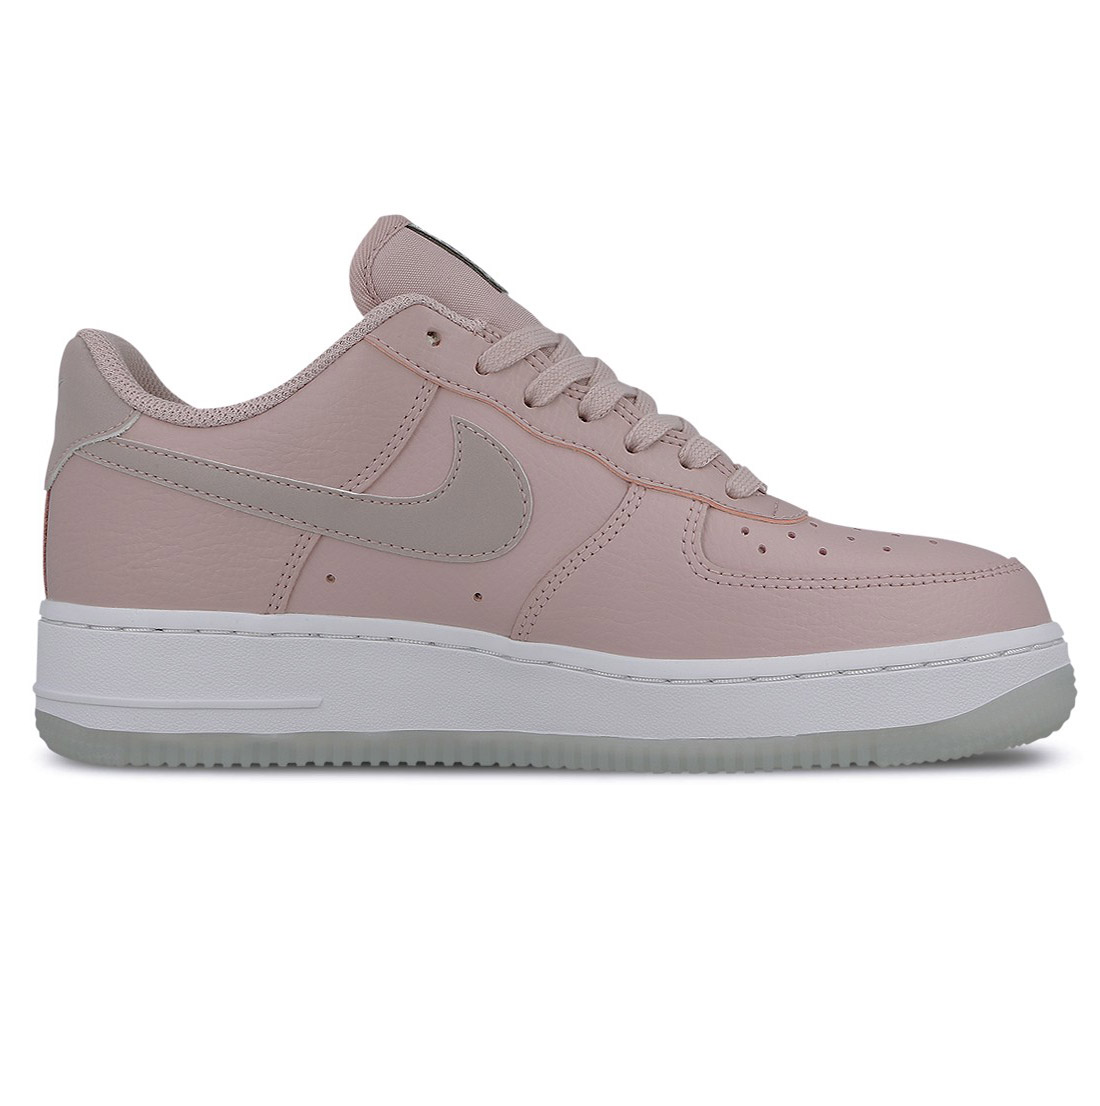 Nike WMNS Air Force 1 '07 ESS Damen Sneaker rosa weiß AO2132 500